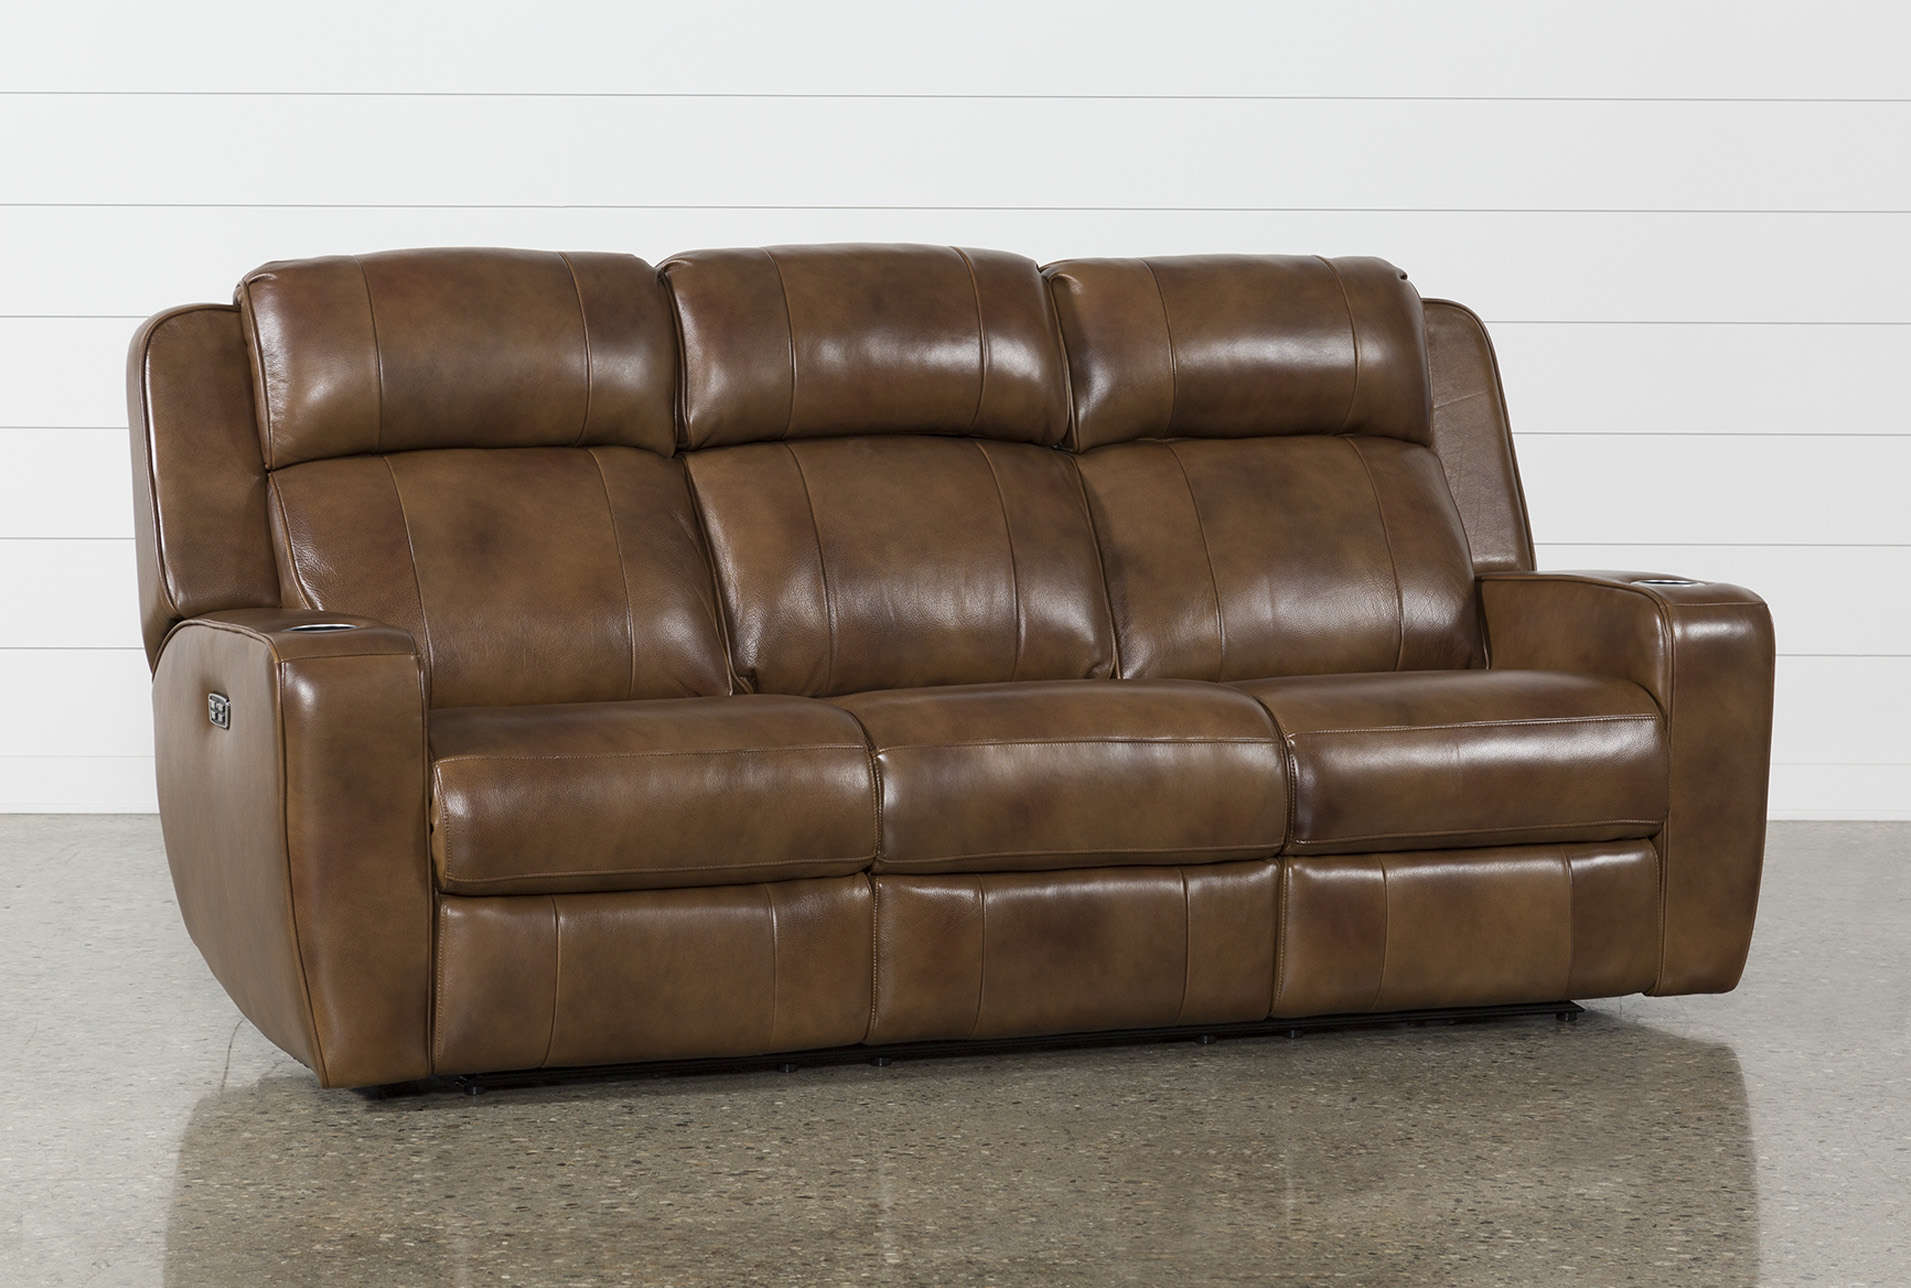 Phelps Leather Power Reclining Sofa W/Power Headrest U0026amp; Usb (Qty: 1) Has  Been Successfully Added To Your Cart.